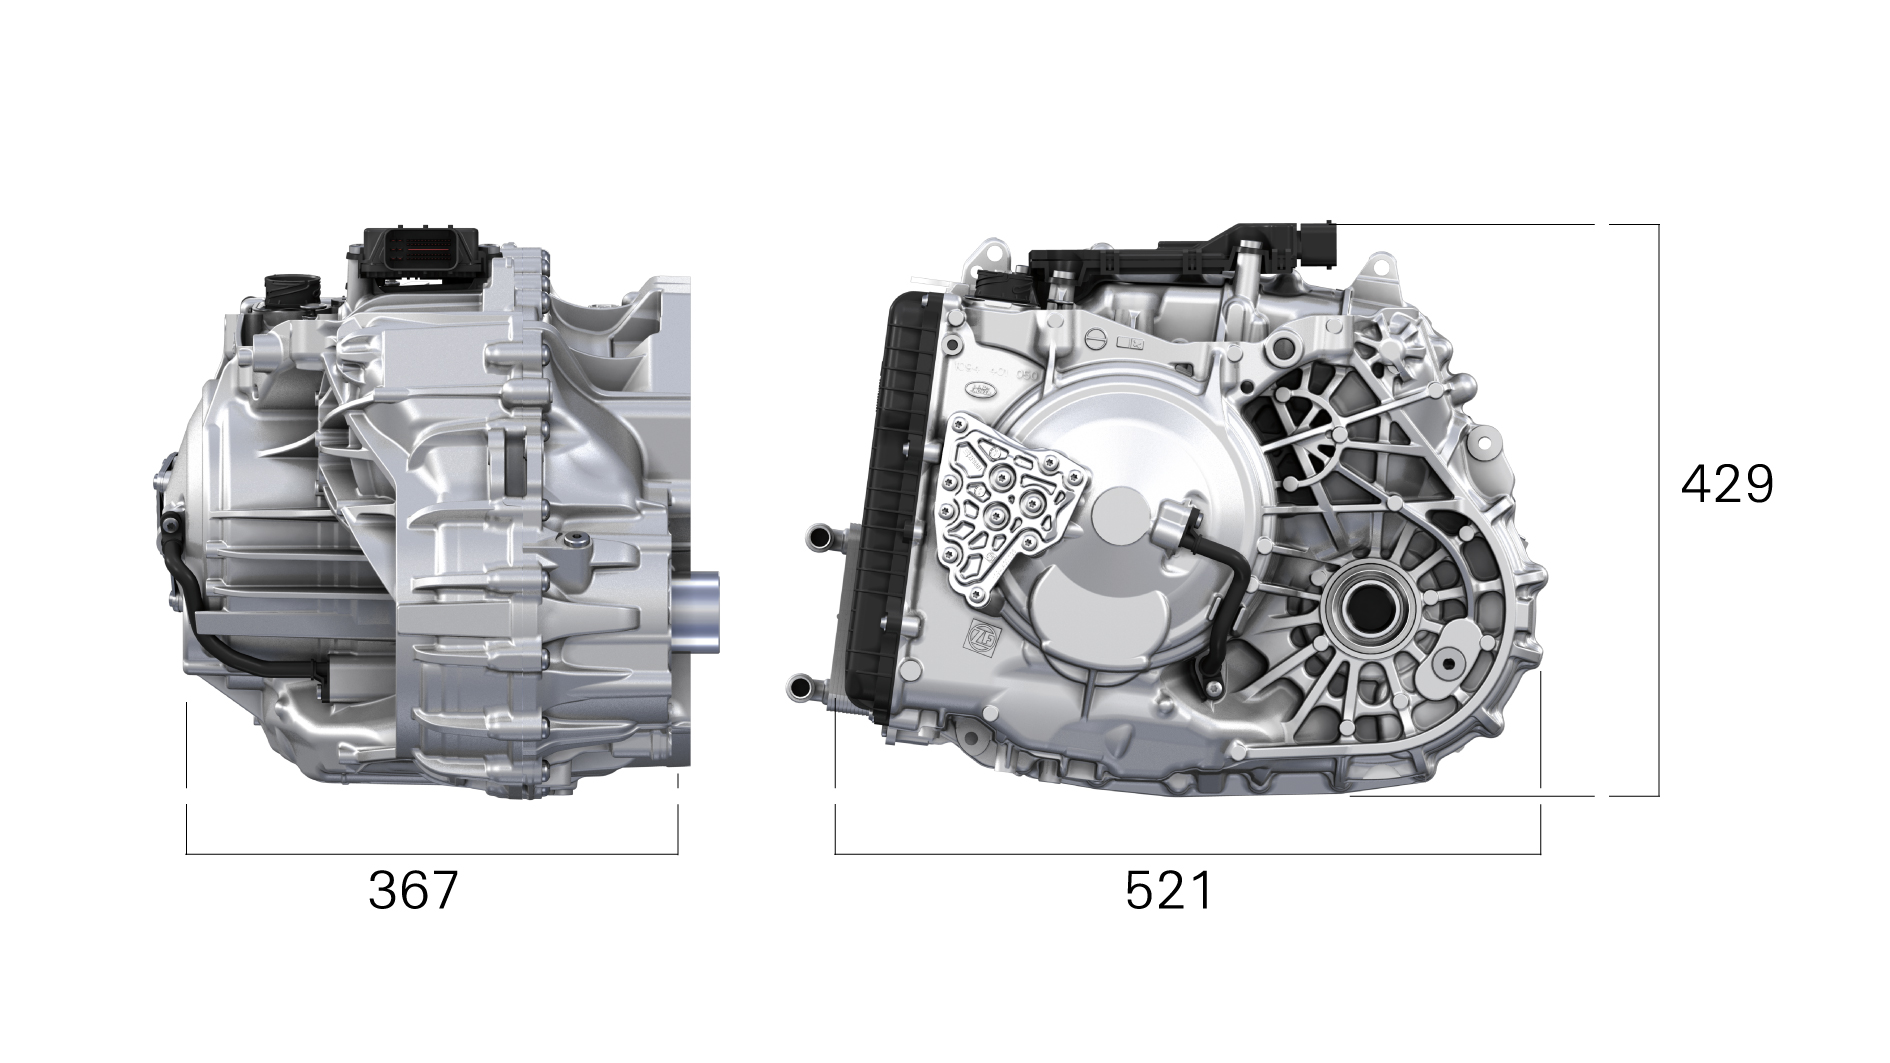 Zf 9hp Transmission Picture Courtesy Of Land Rover The